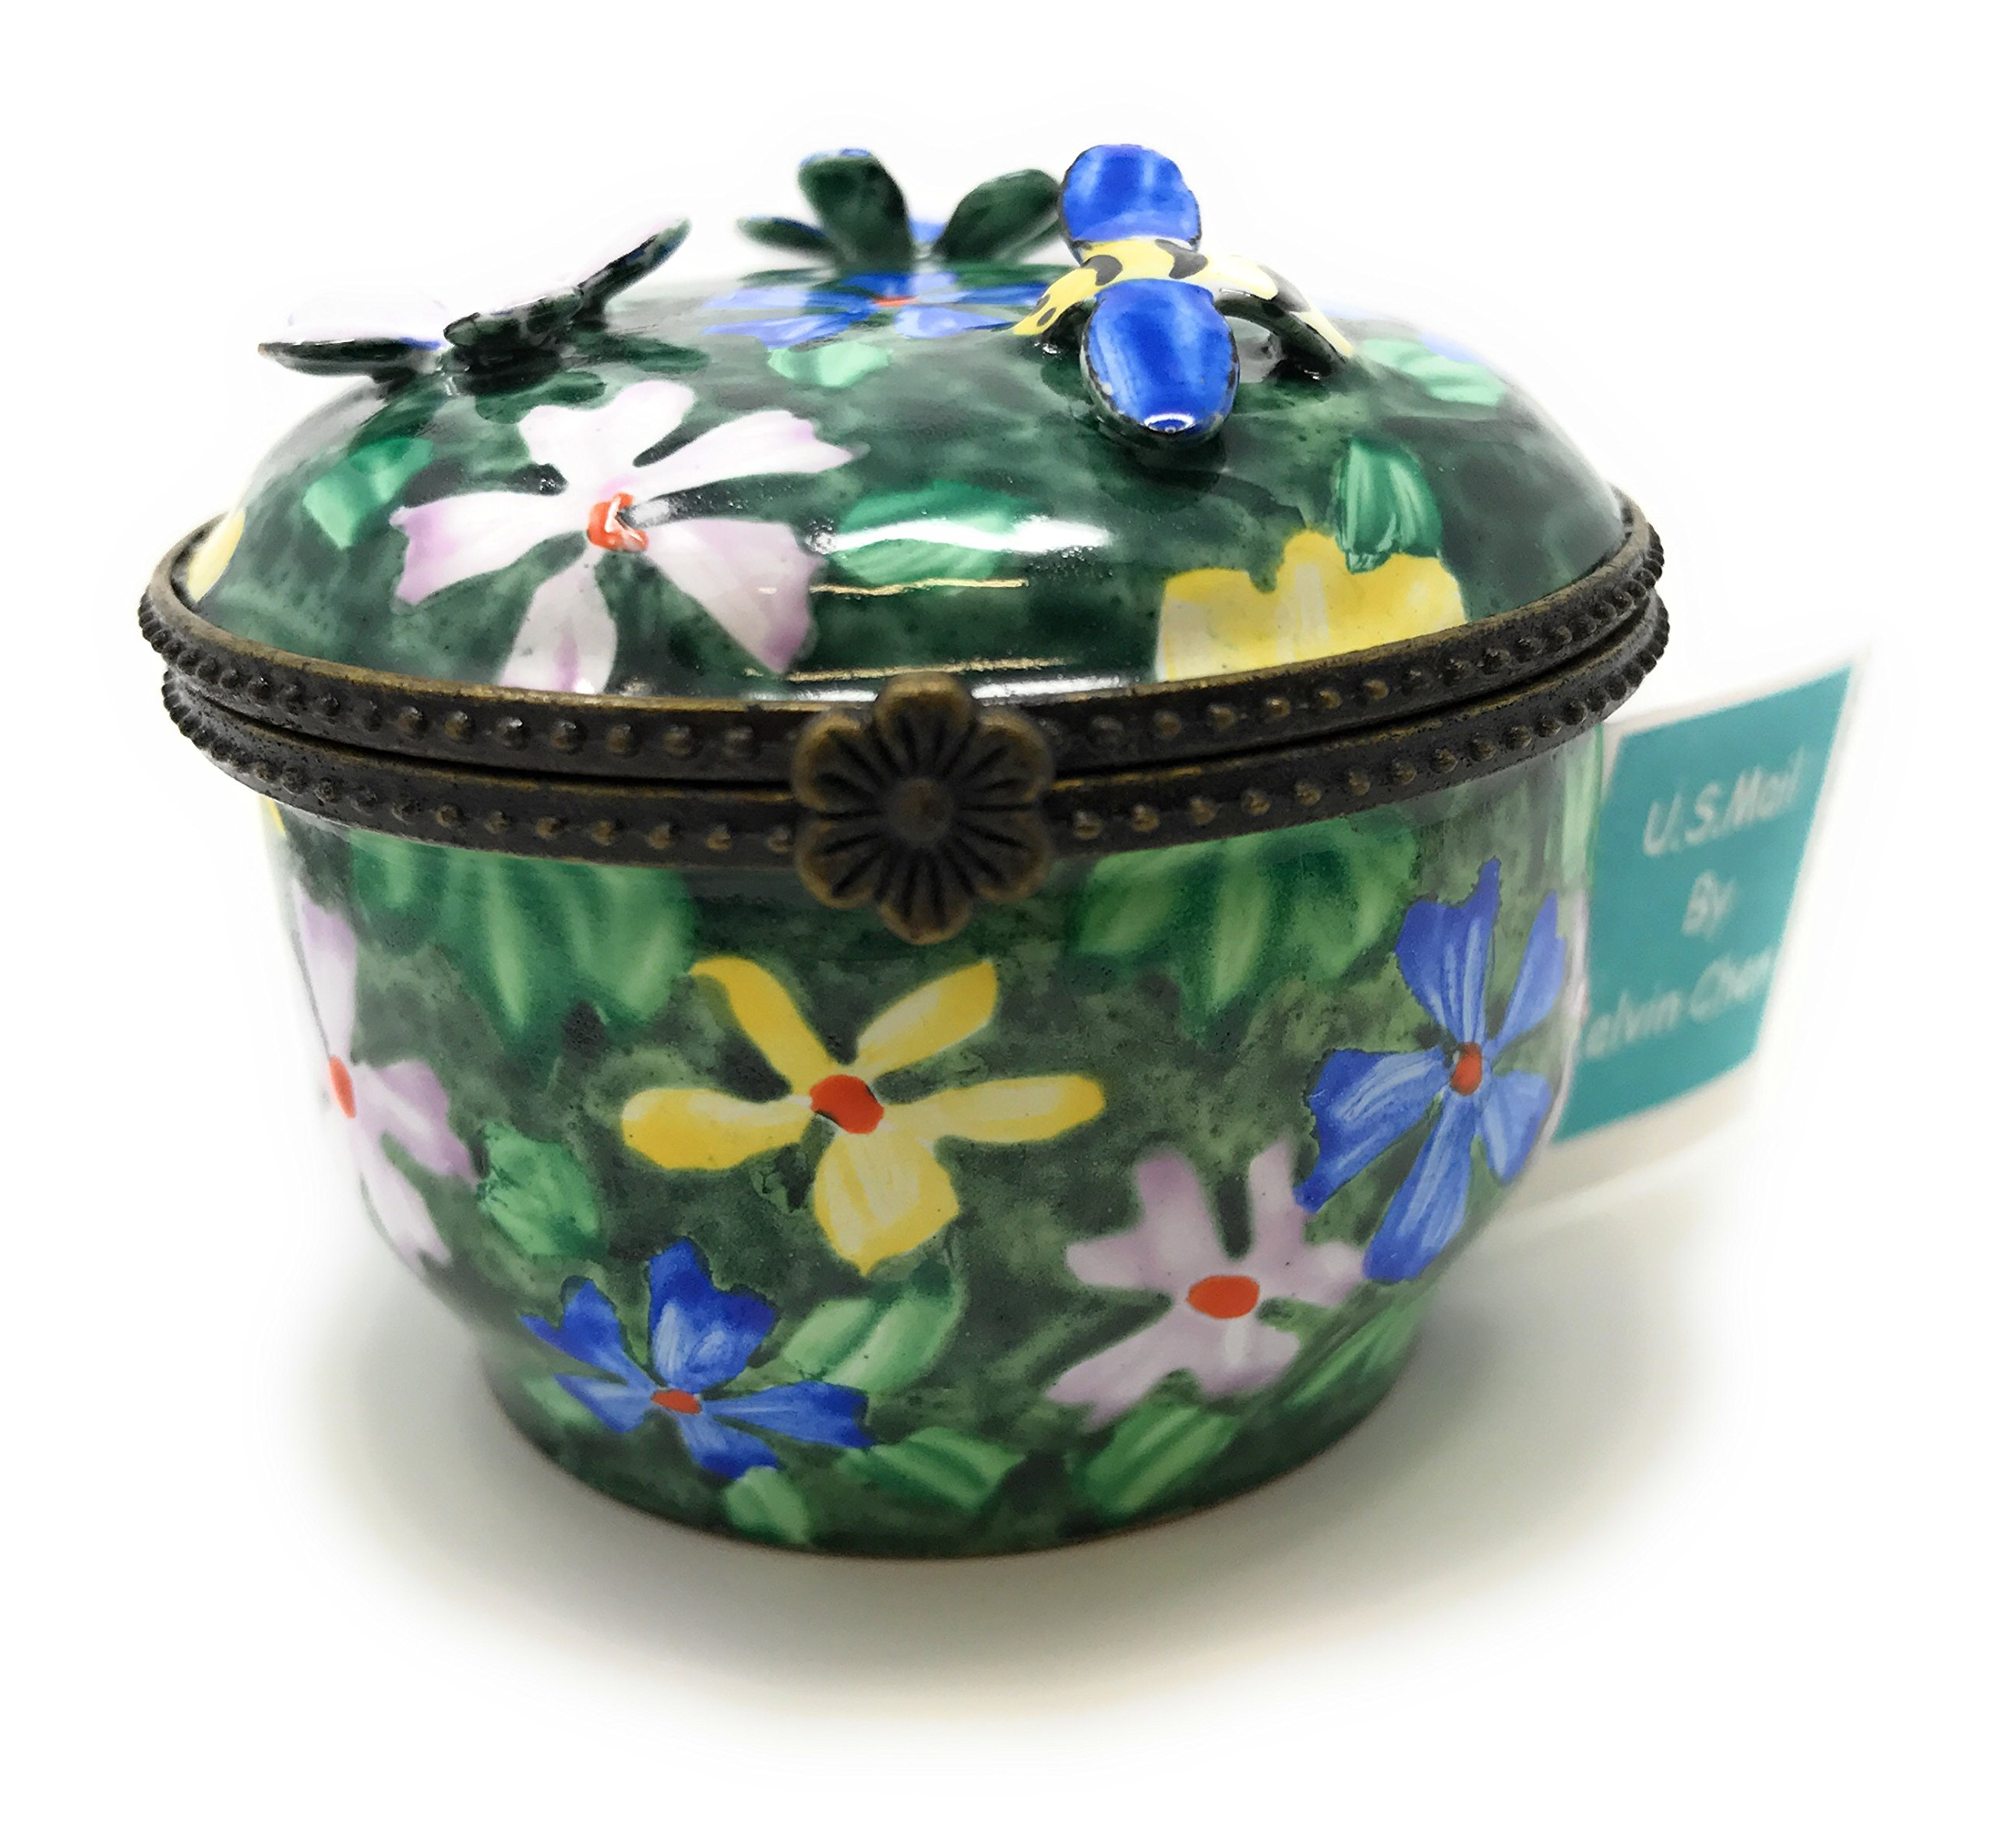 Kelvin Chen Enameled Postage Stamp Dispenser - Floral with 3-D Flowers and Bumble Bee, 2.25 Round by Kelvin Chen